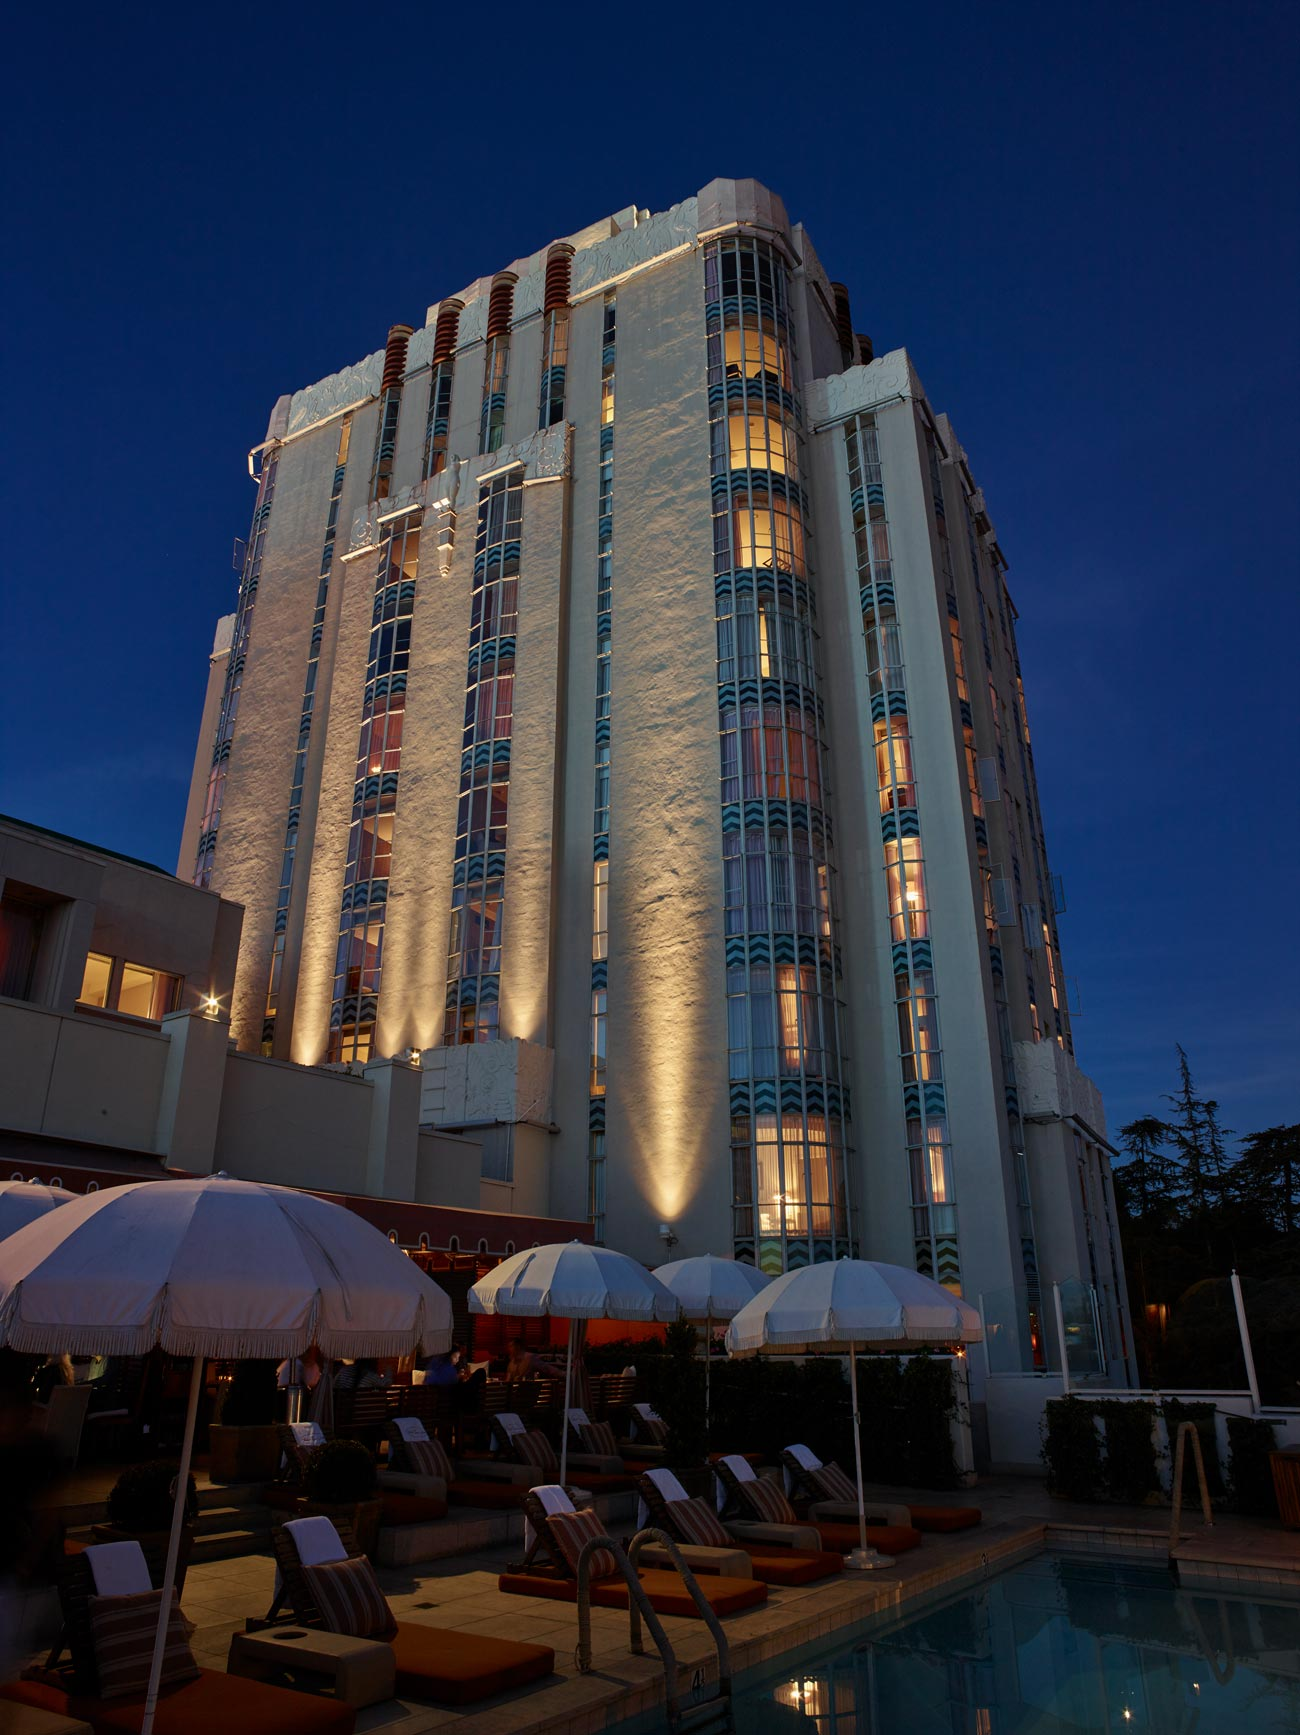 Sunset Tower Hotel - West Hollywood